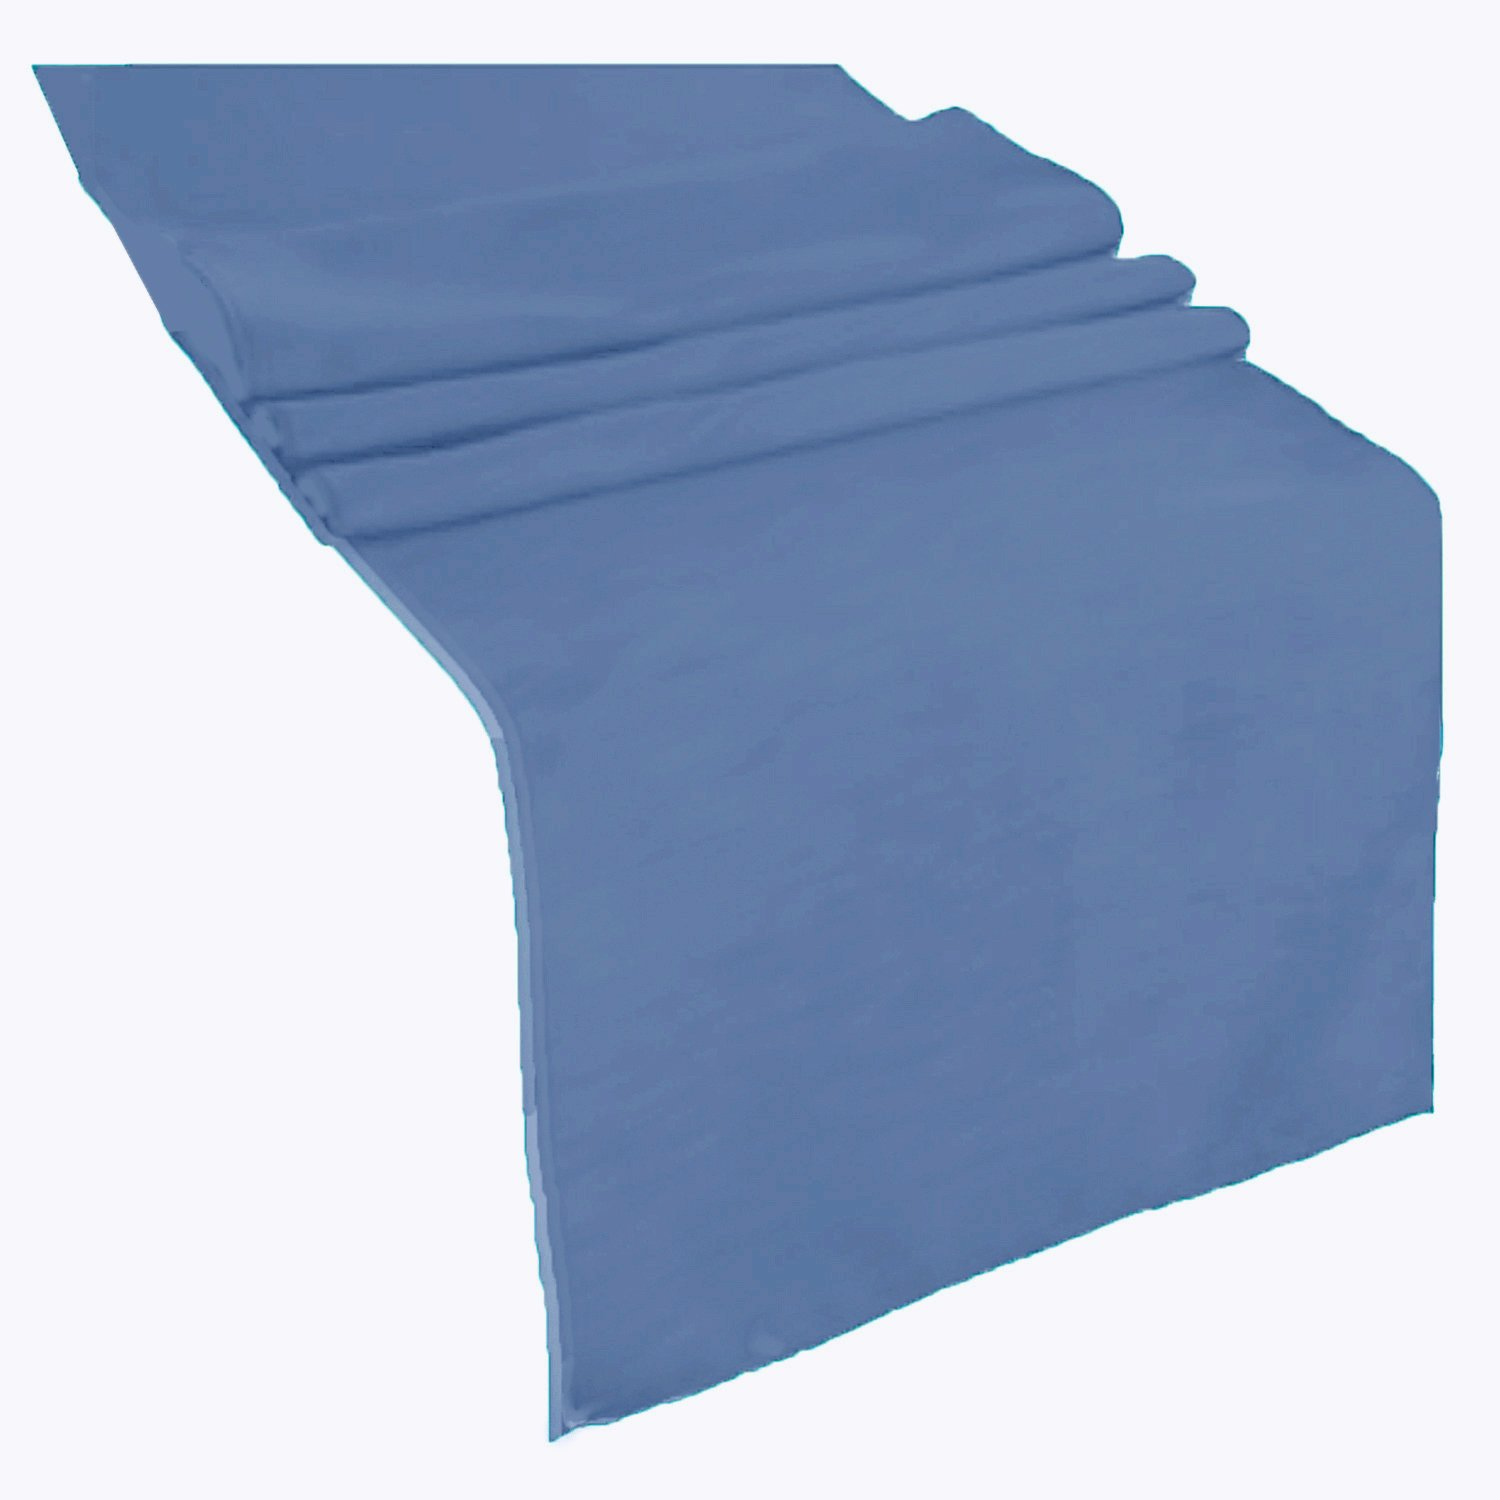 Runner Linens Factory Runner Polyester 12x72 Inches By (Steel Blue) by Runner Linens Factory